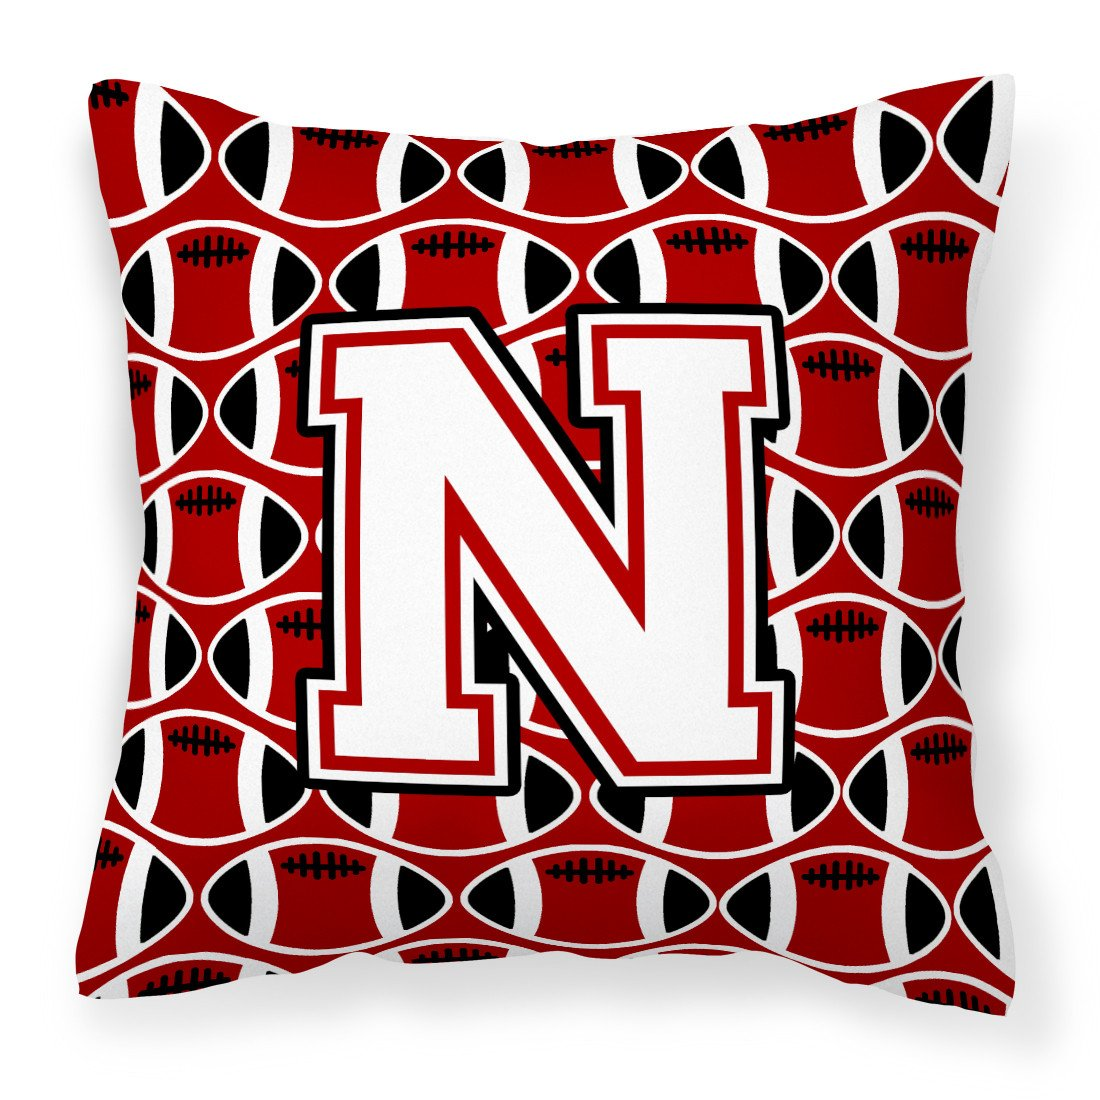 Letter N Football Cardinal and White Fabric Decorative Pillow CJ1082-NPW1414 by Caroline's Treasures